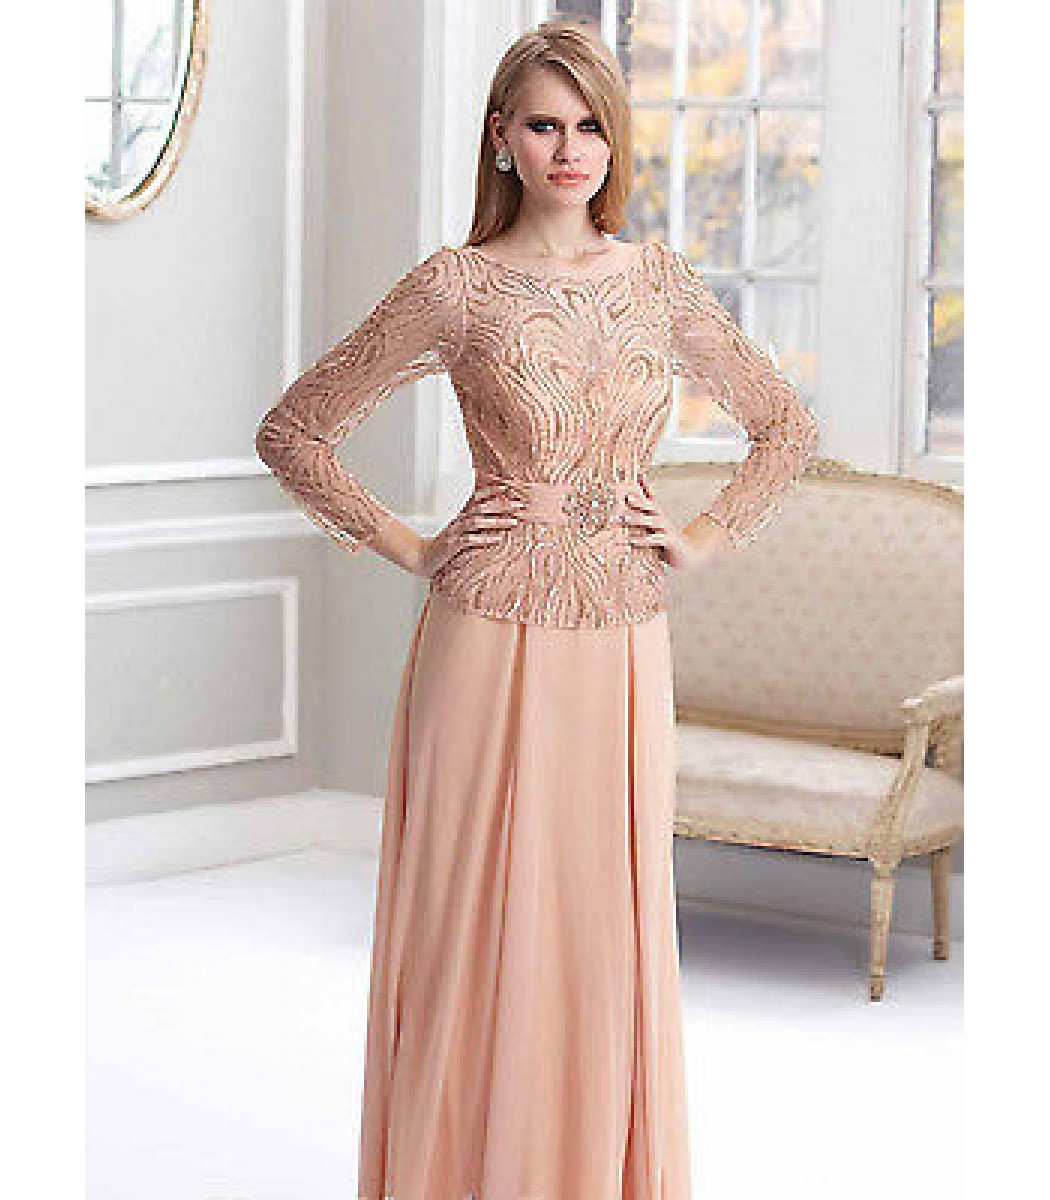 Terani Couture M1819 Peach Formal Evening Gown Dress Size 14 NWT ...